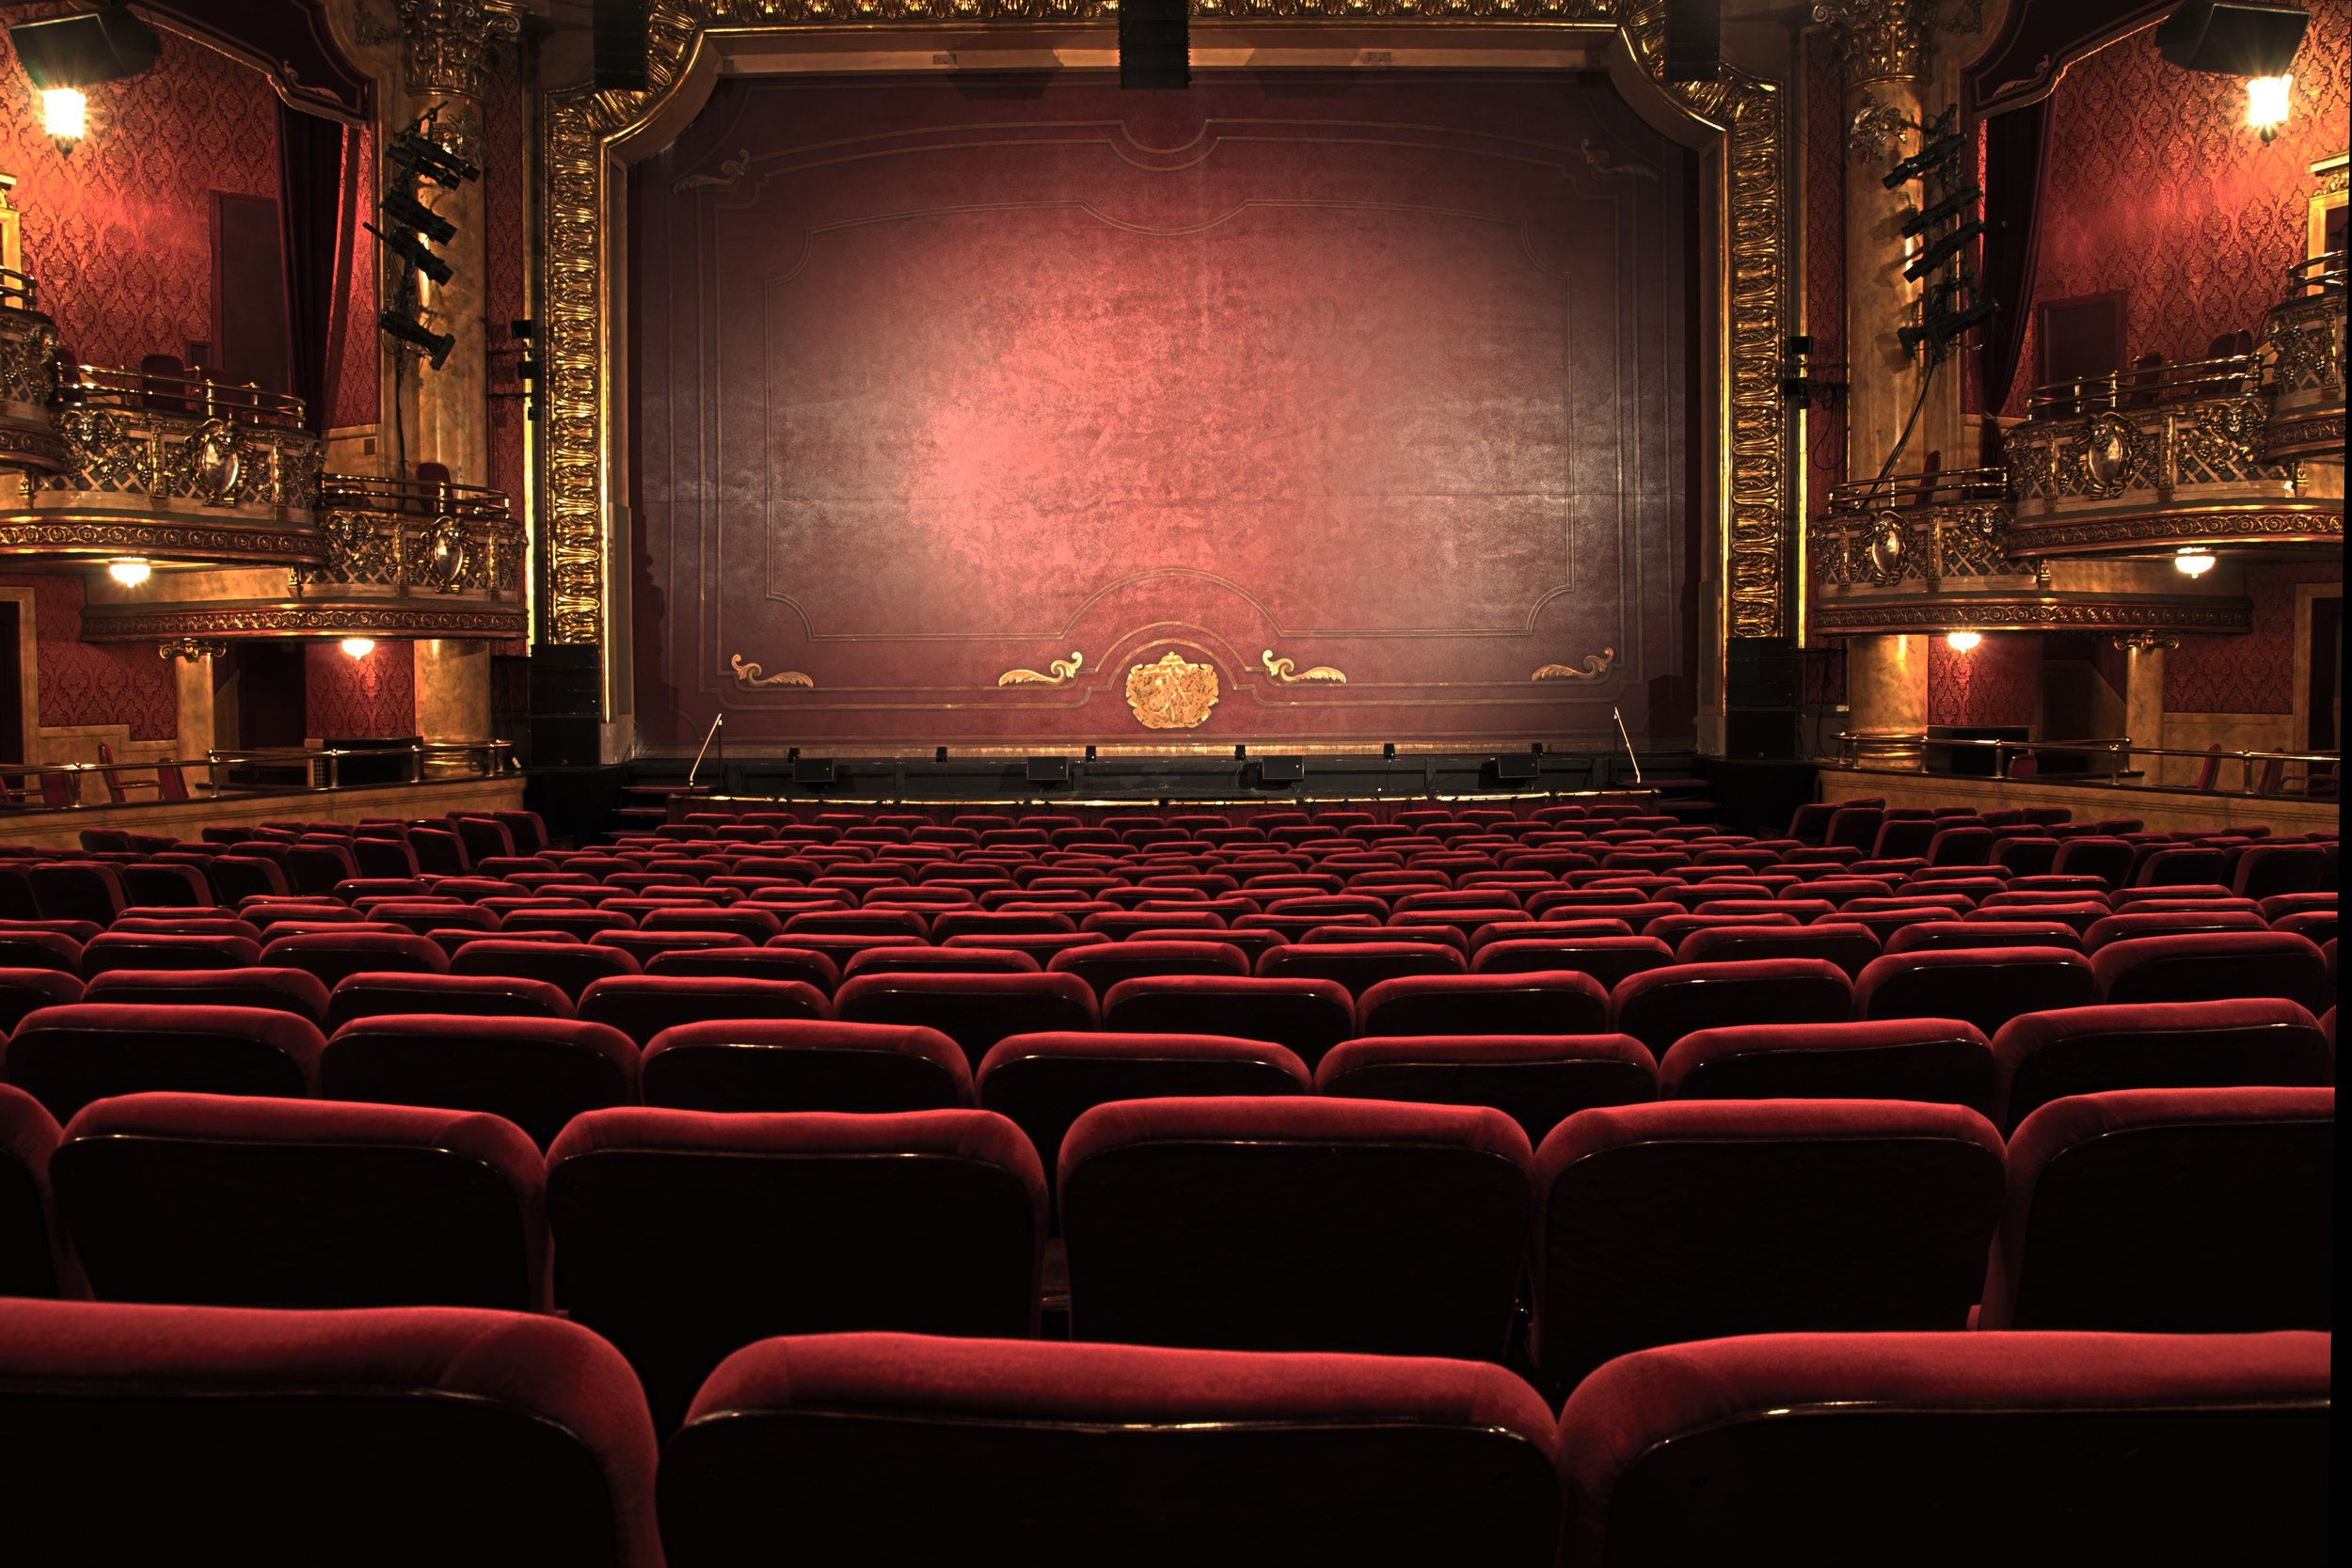 Photo of an old theater hall with red seats and a red curtain.